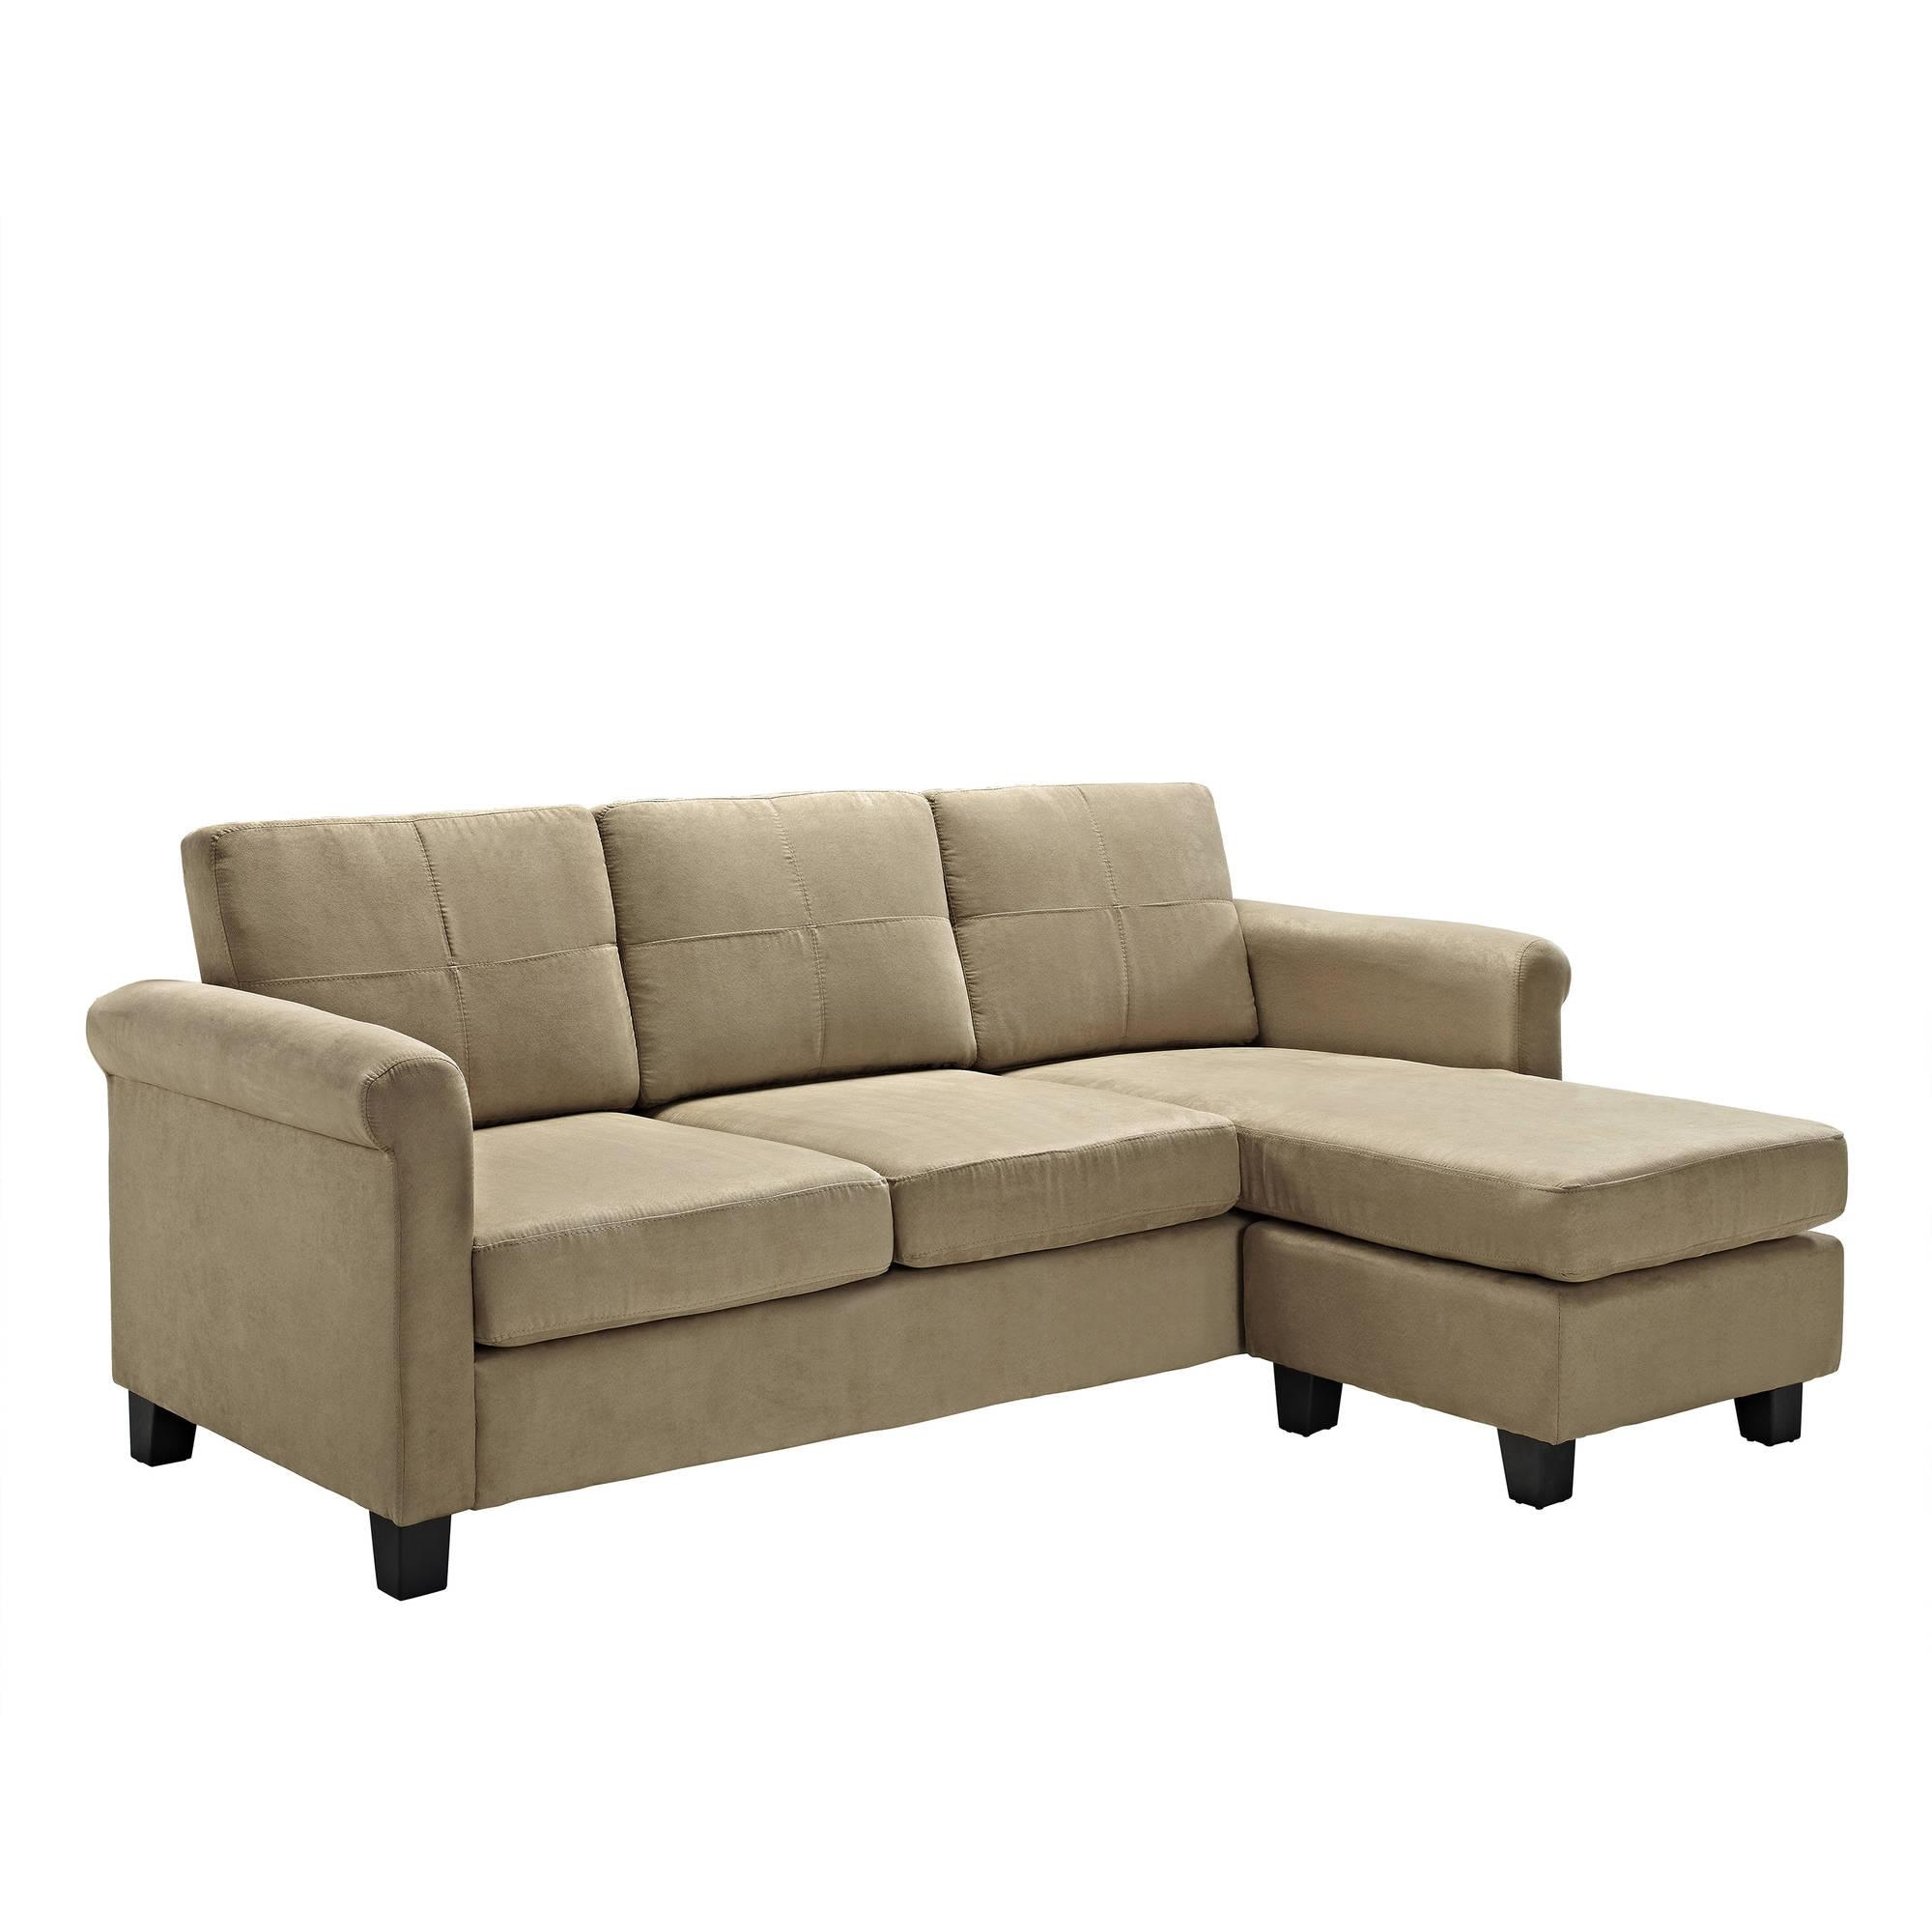 Dorel Living Small Spaces Configurable Sectional Sofa, Multiple Regarding Sectional Small Space (Image 5 of 20)